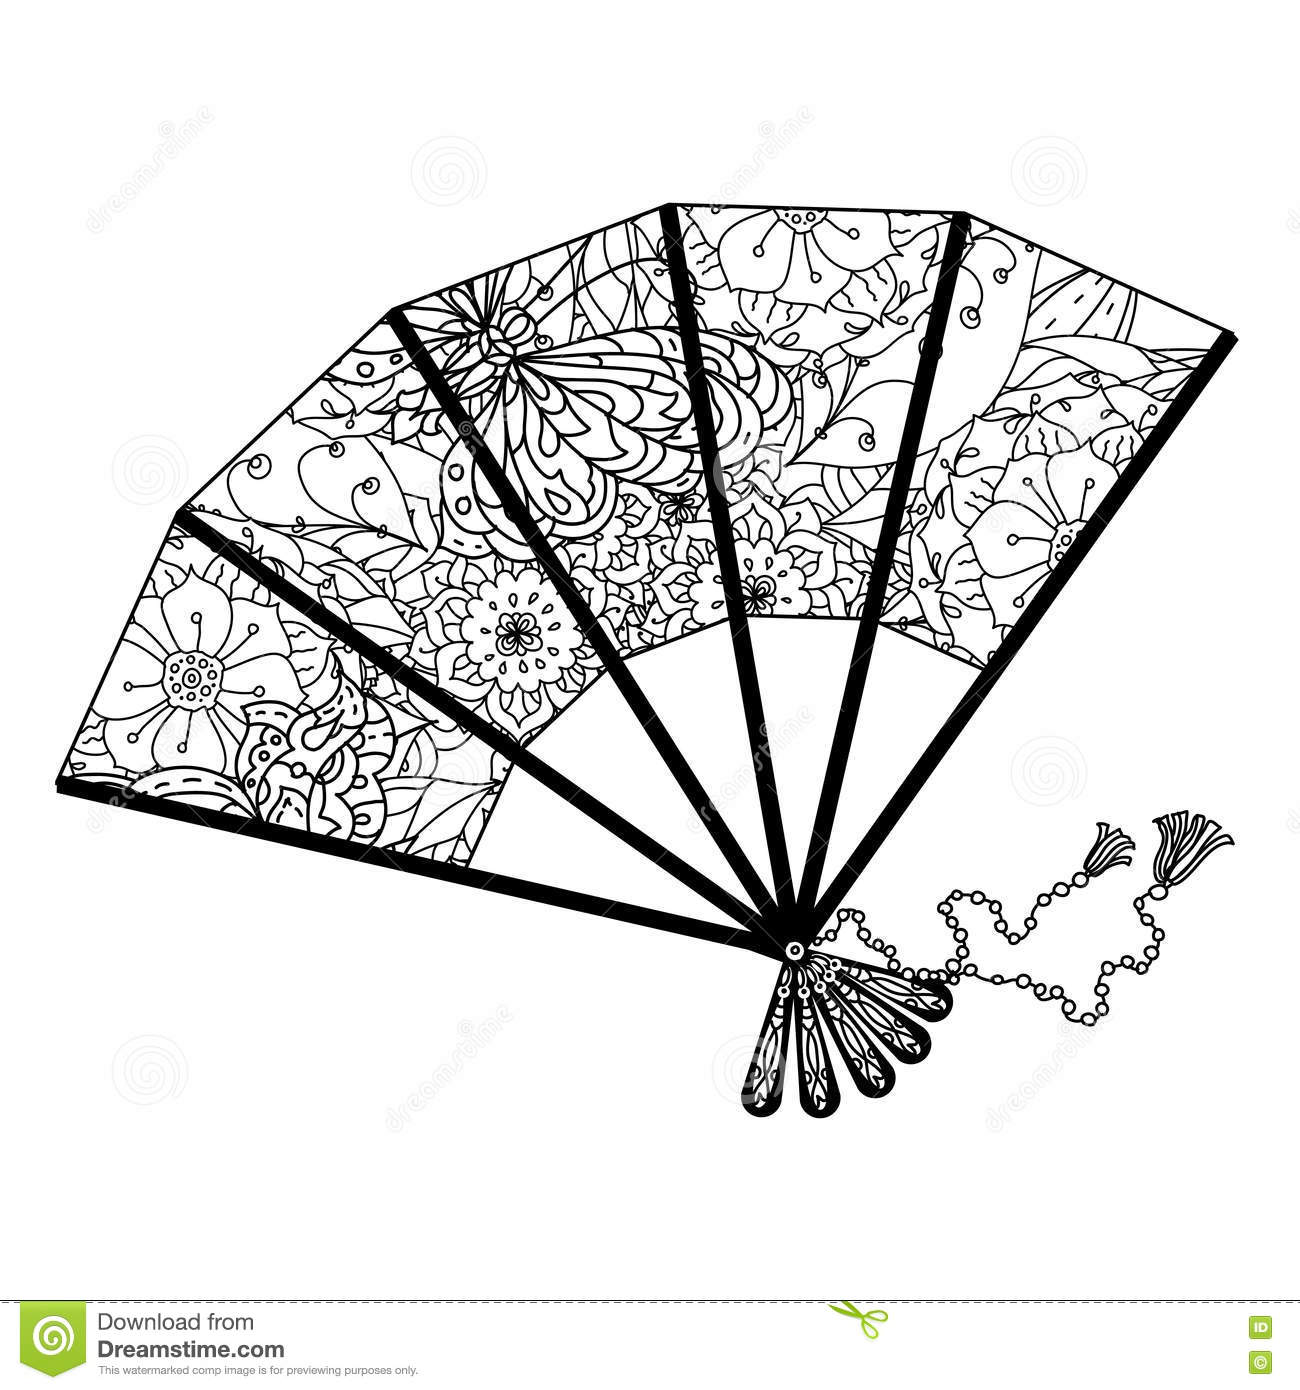 fan coloring page - asian fan sheet coloring pages